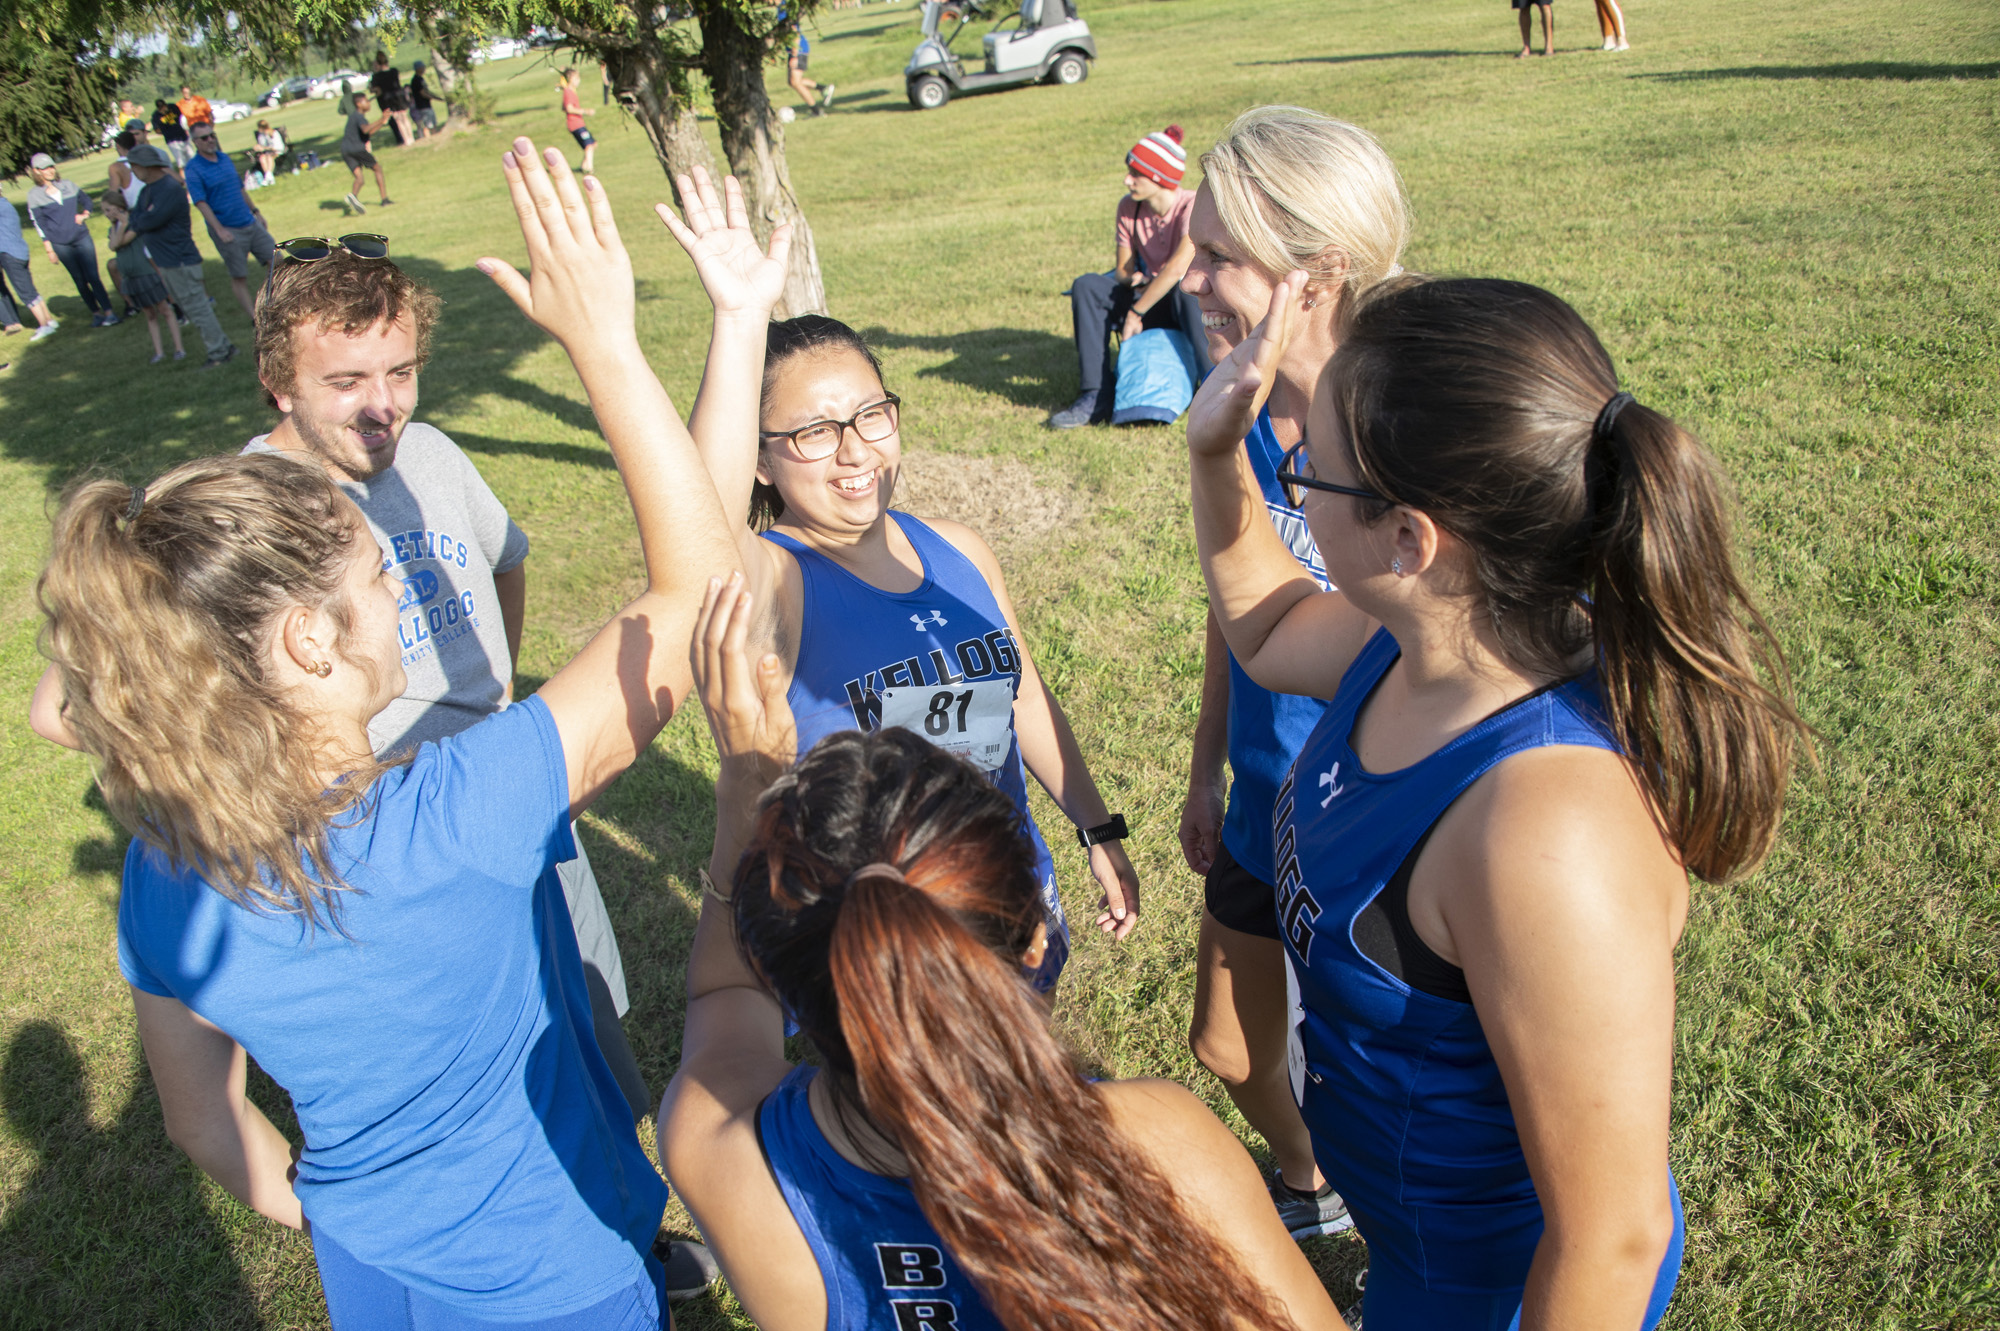 The women's cross-country team huddles before a race.